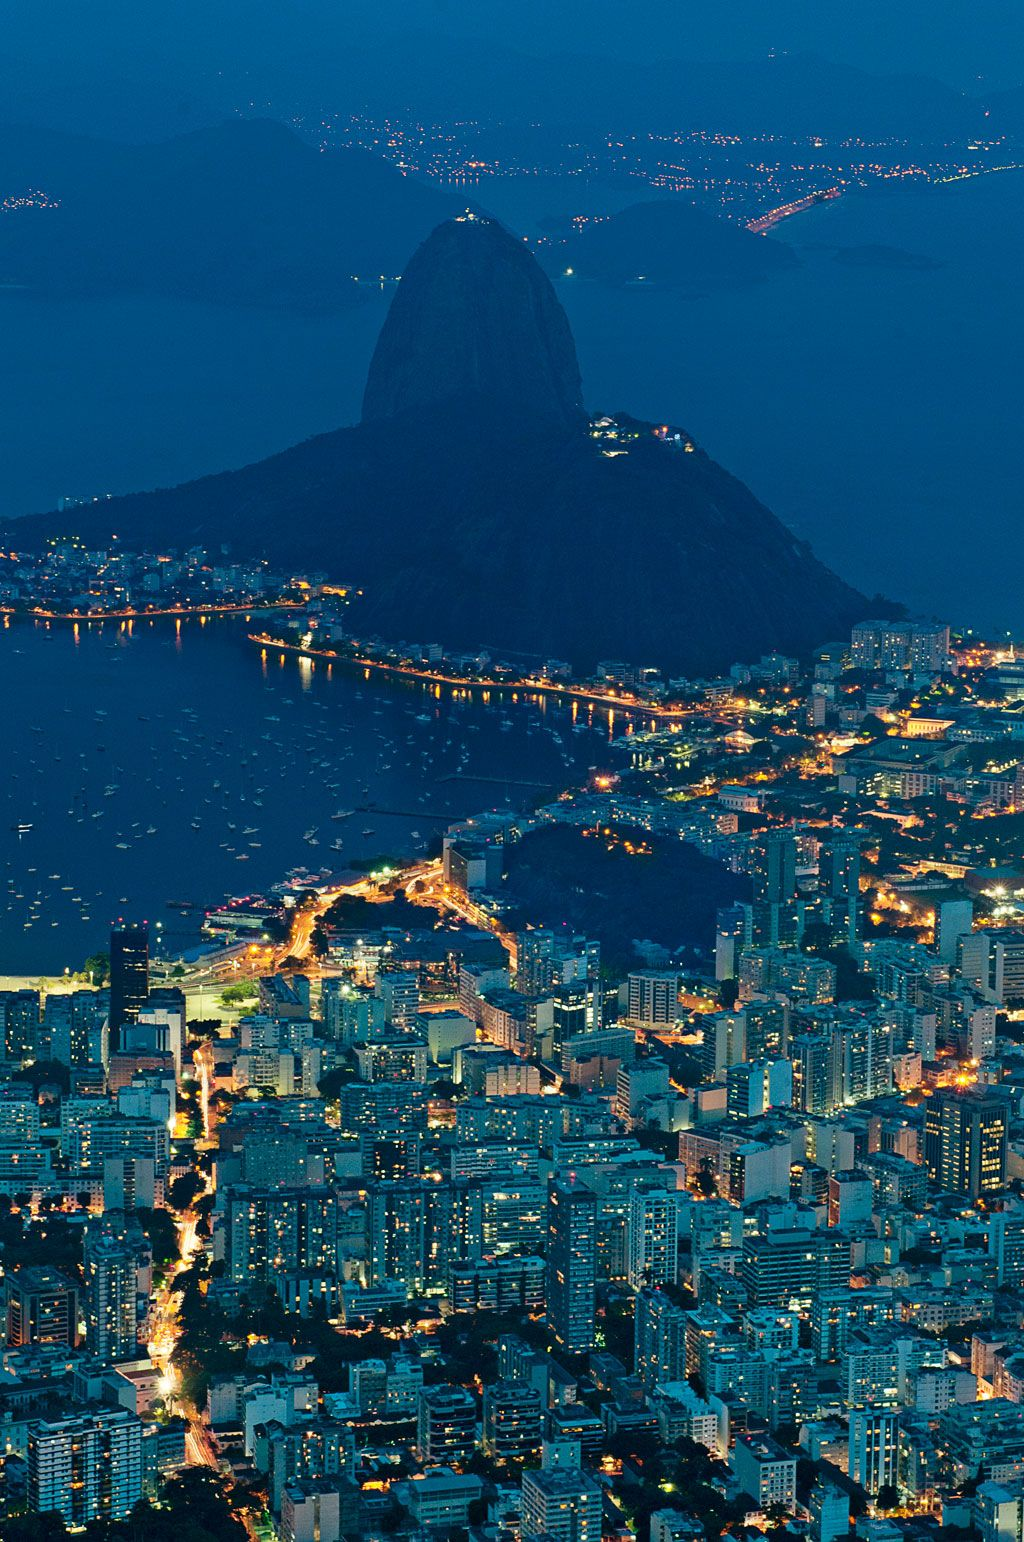 Rio pictured from its most famous landmark, Christ the Redeemer, Brazil.